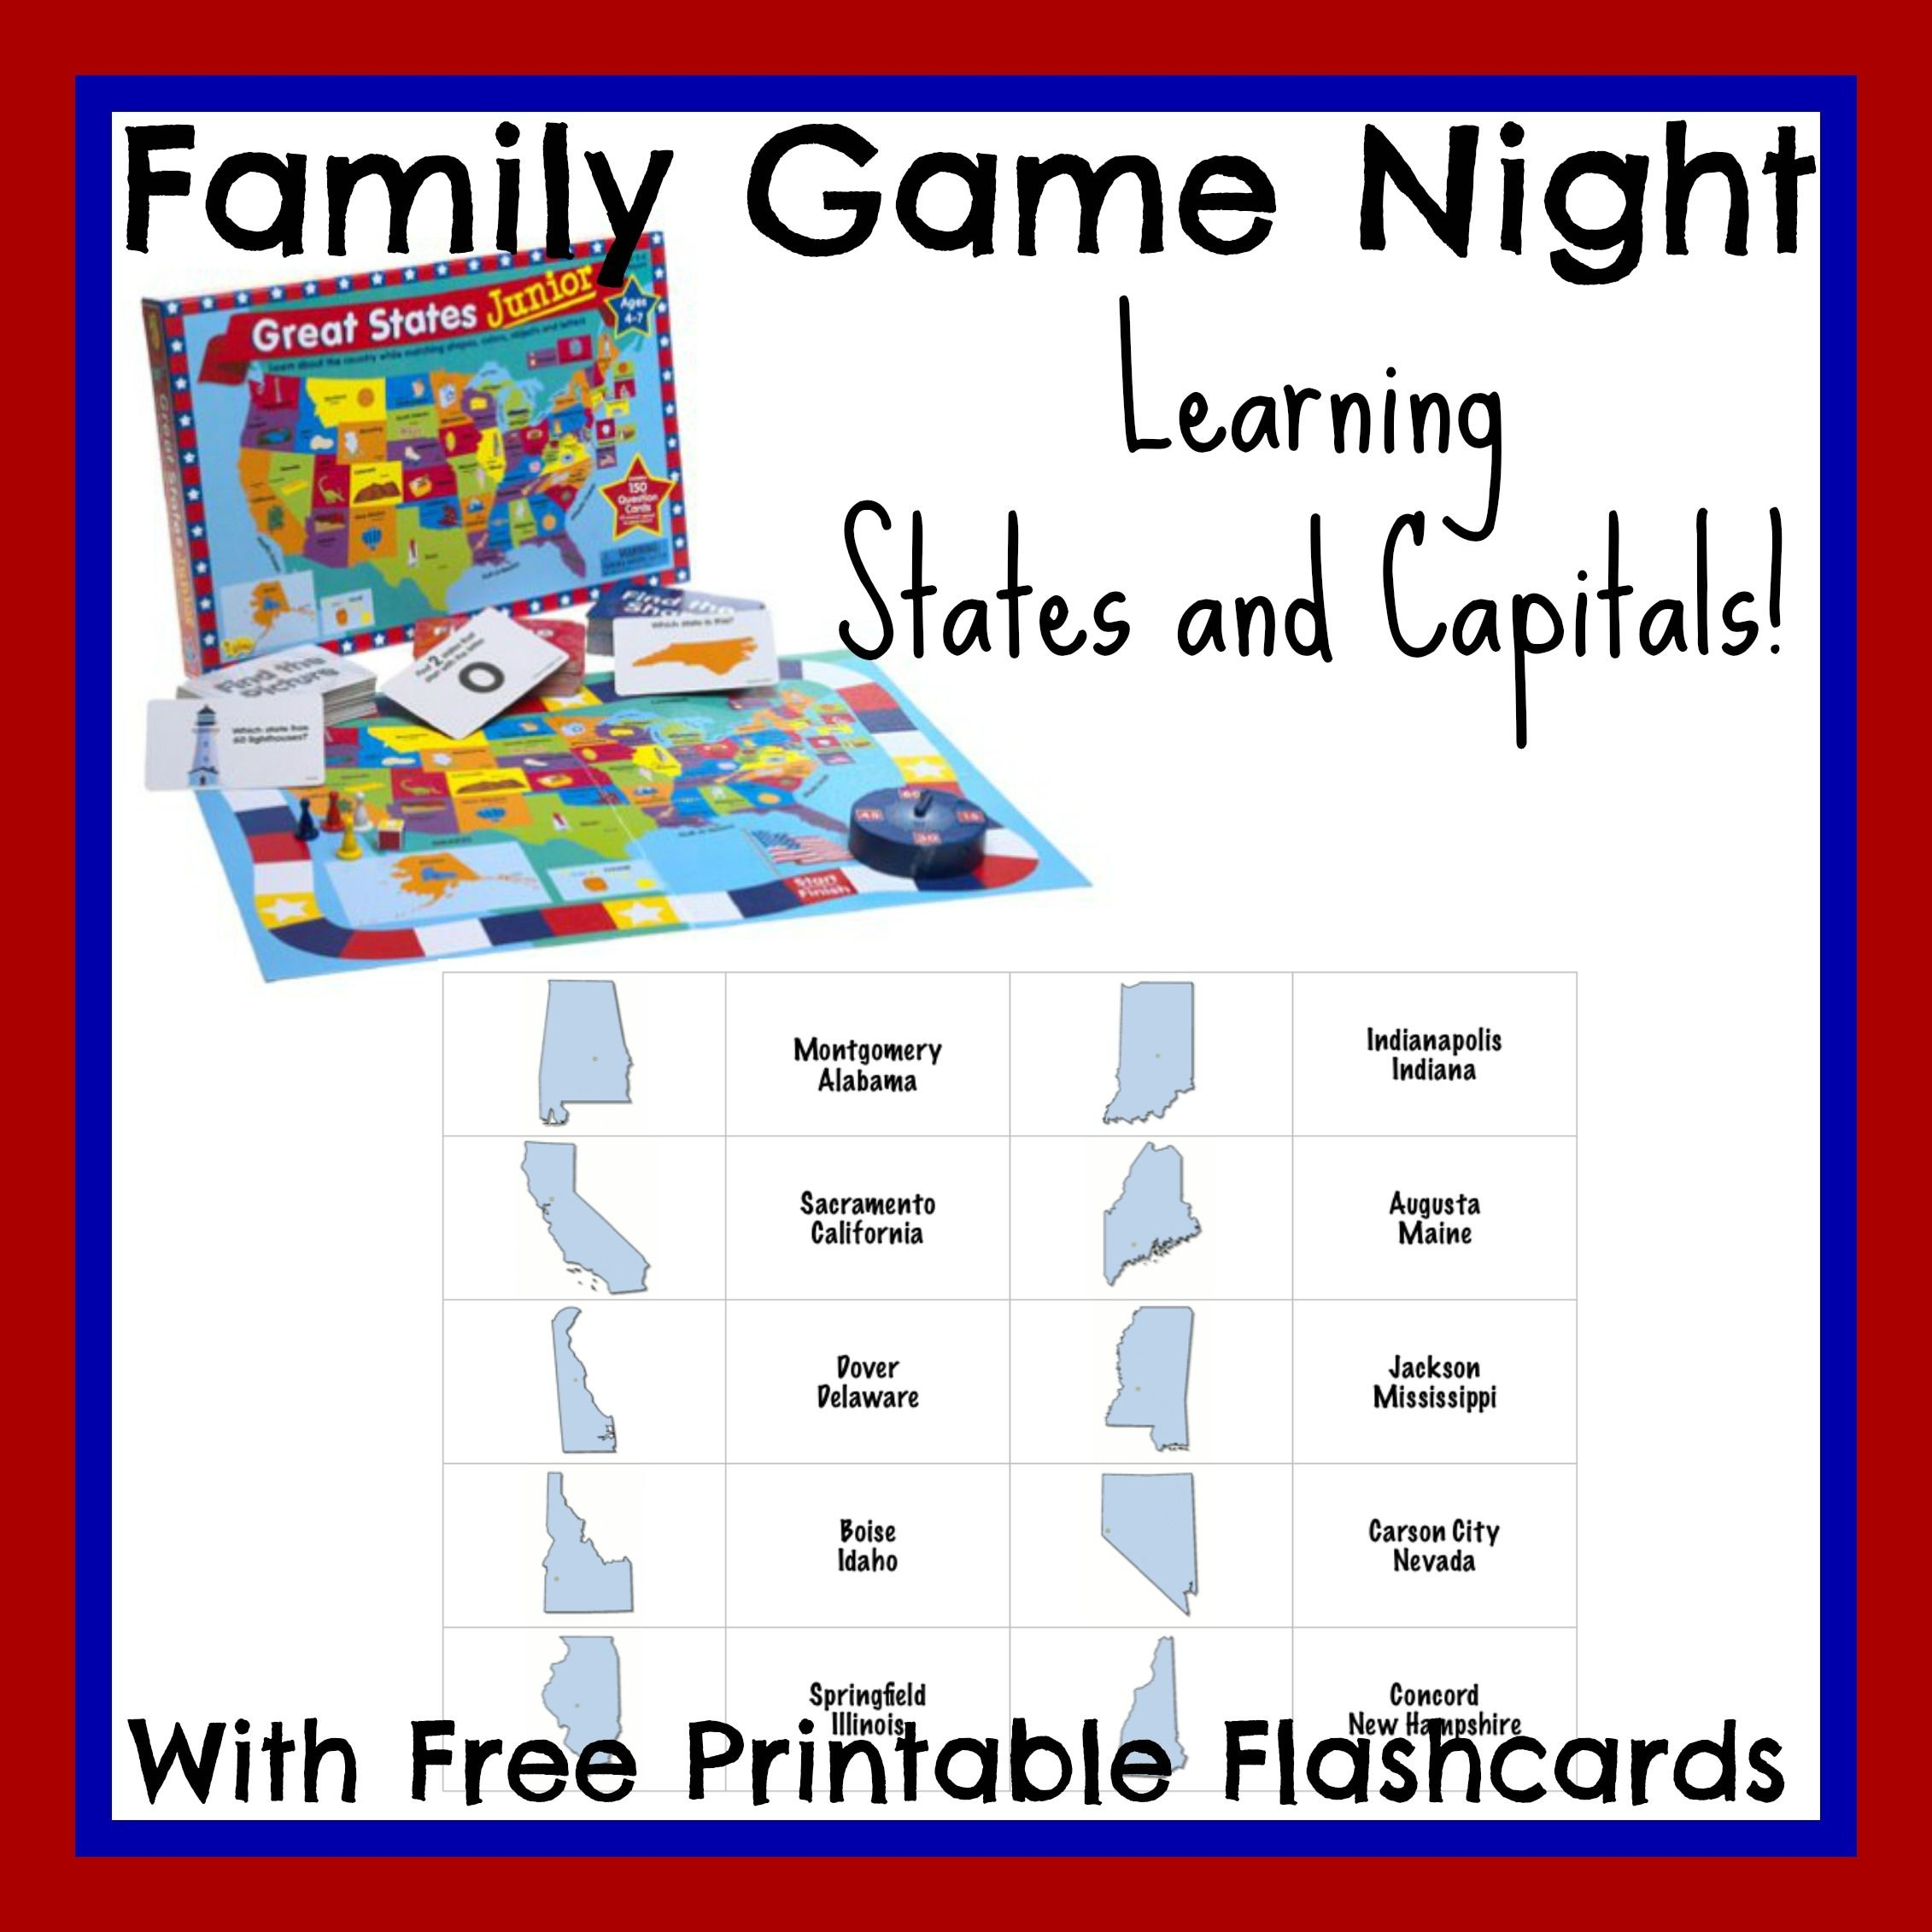 State Capital Flashcards Printable Free For Family Game Night - State Capital Flashcards Printable Free